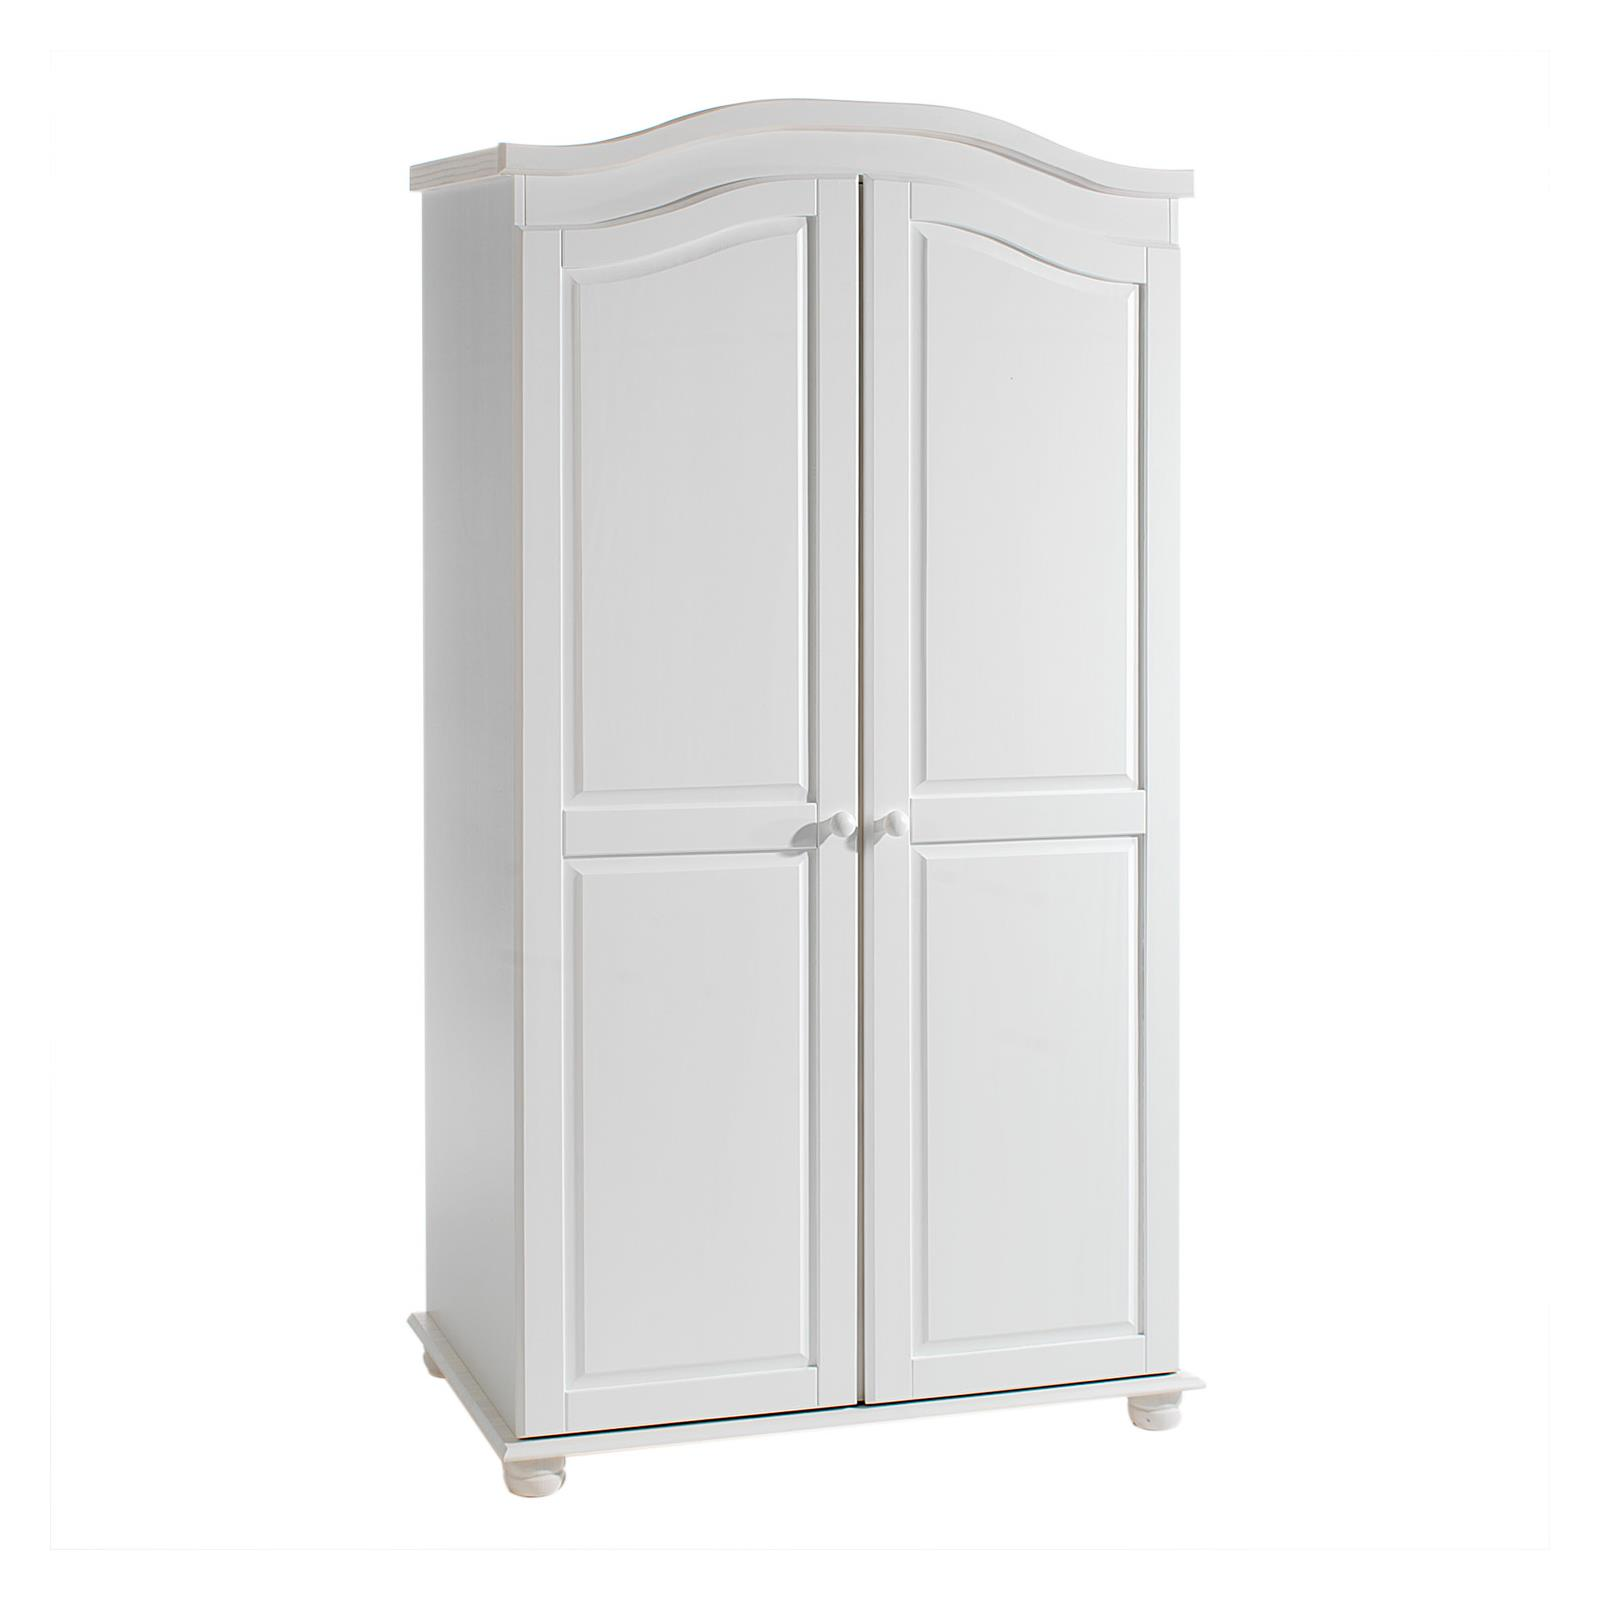 armoire en pin davos lasur blanc mobil meubles. Black Bedroom Furniture Sets. Home Design Ideas